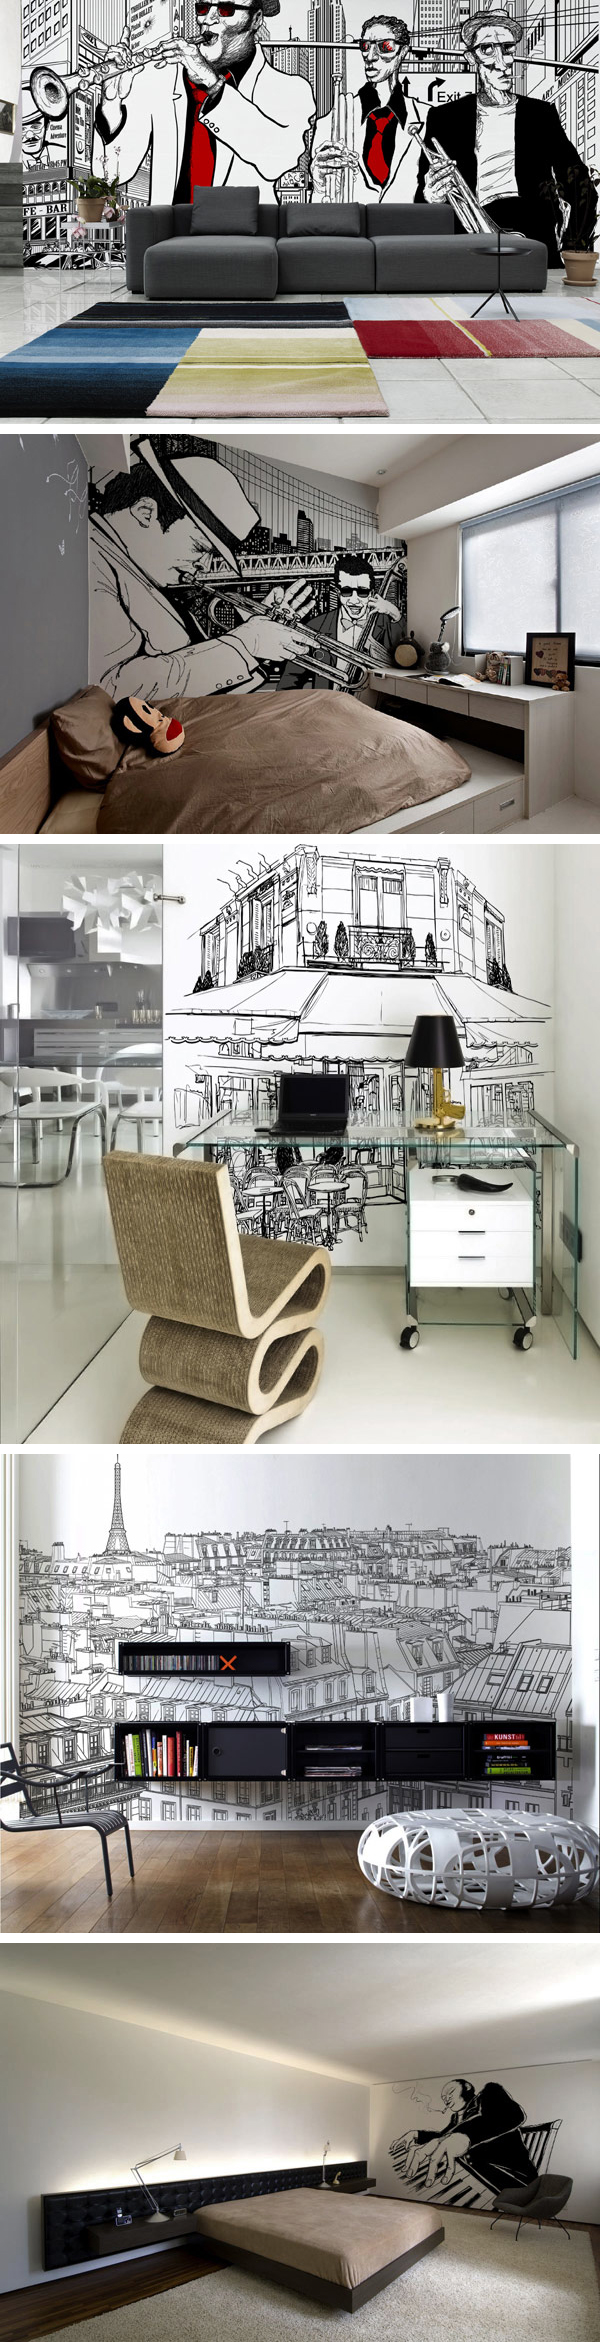 Artistic Interior Design - Adding Personality to Modern Interiors: City Never Sleeps Wall Murals by Pixers original from http://cdn.freshome.com/2013/02/20/adding-personality-to-modern-interiors-city-never-sleeps-wall-murals-by-pixers/